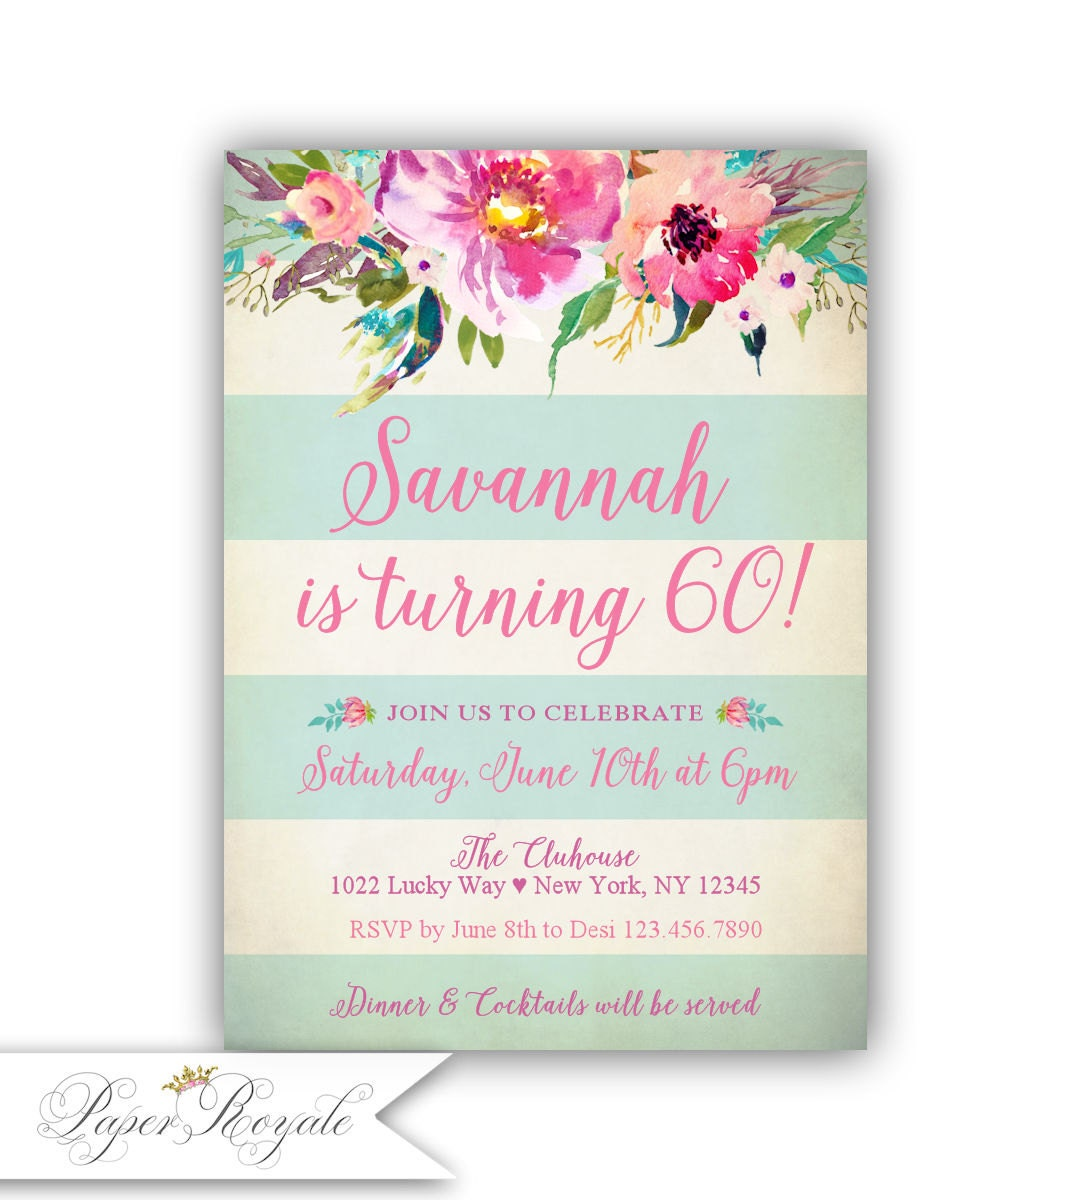 60th birthday invitation for women watercolor floral mint